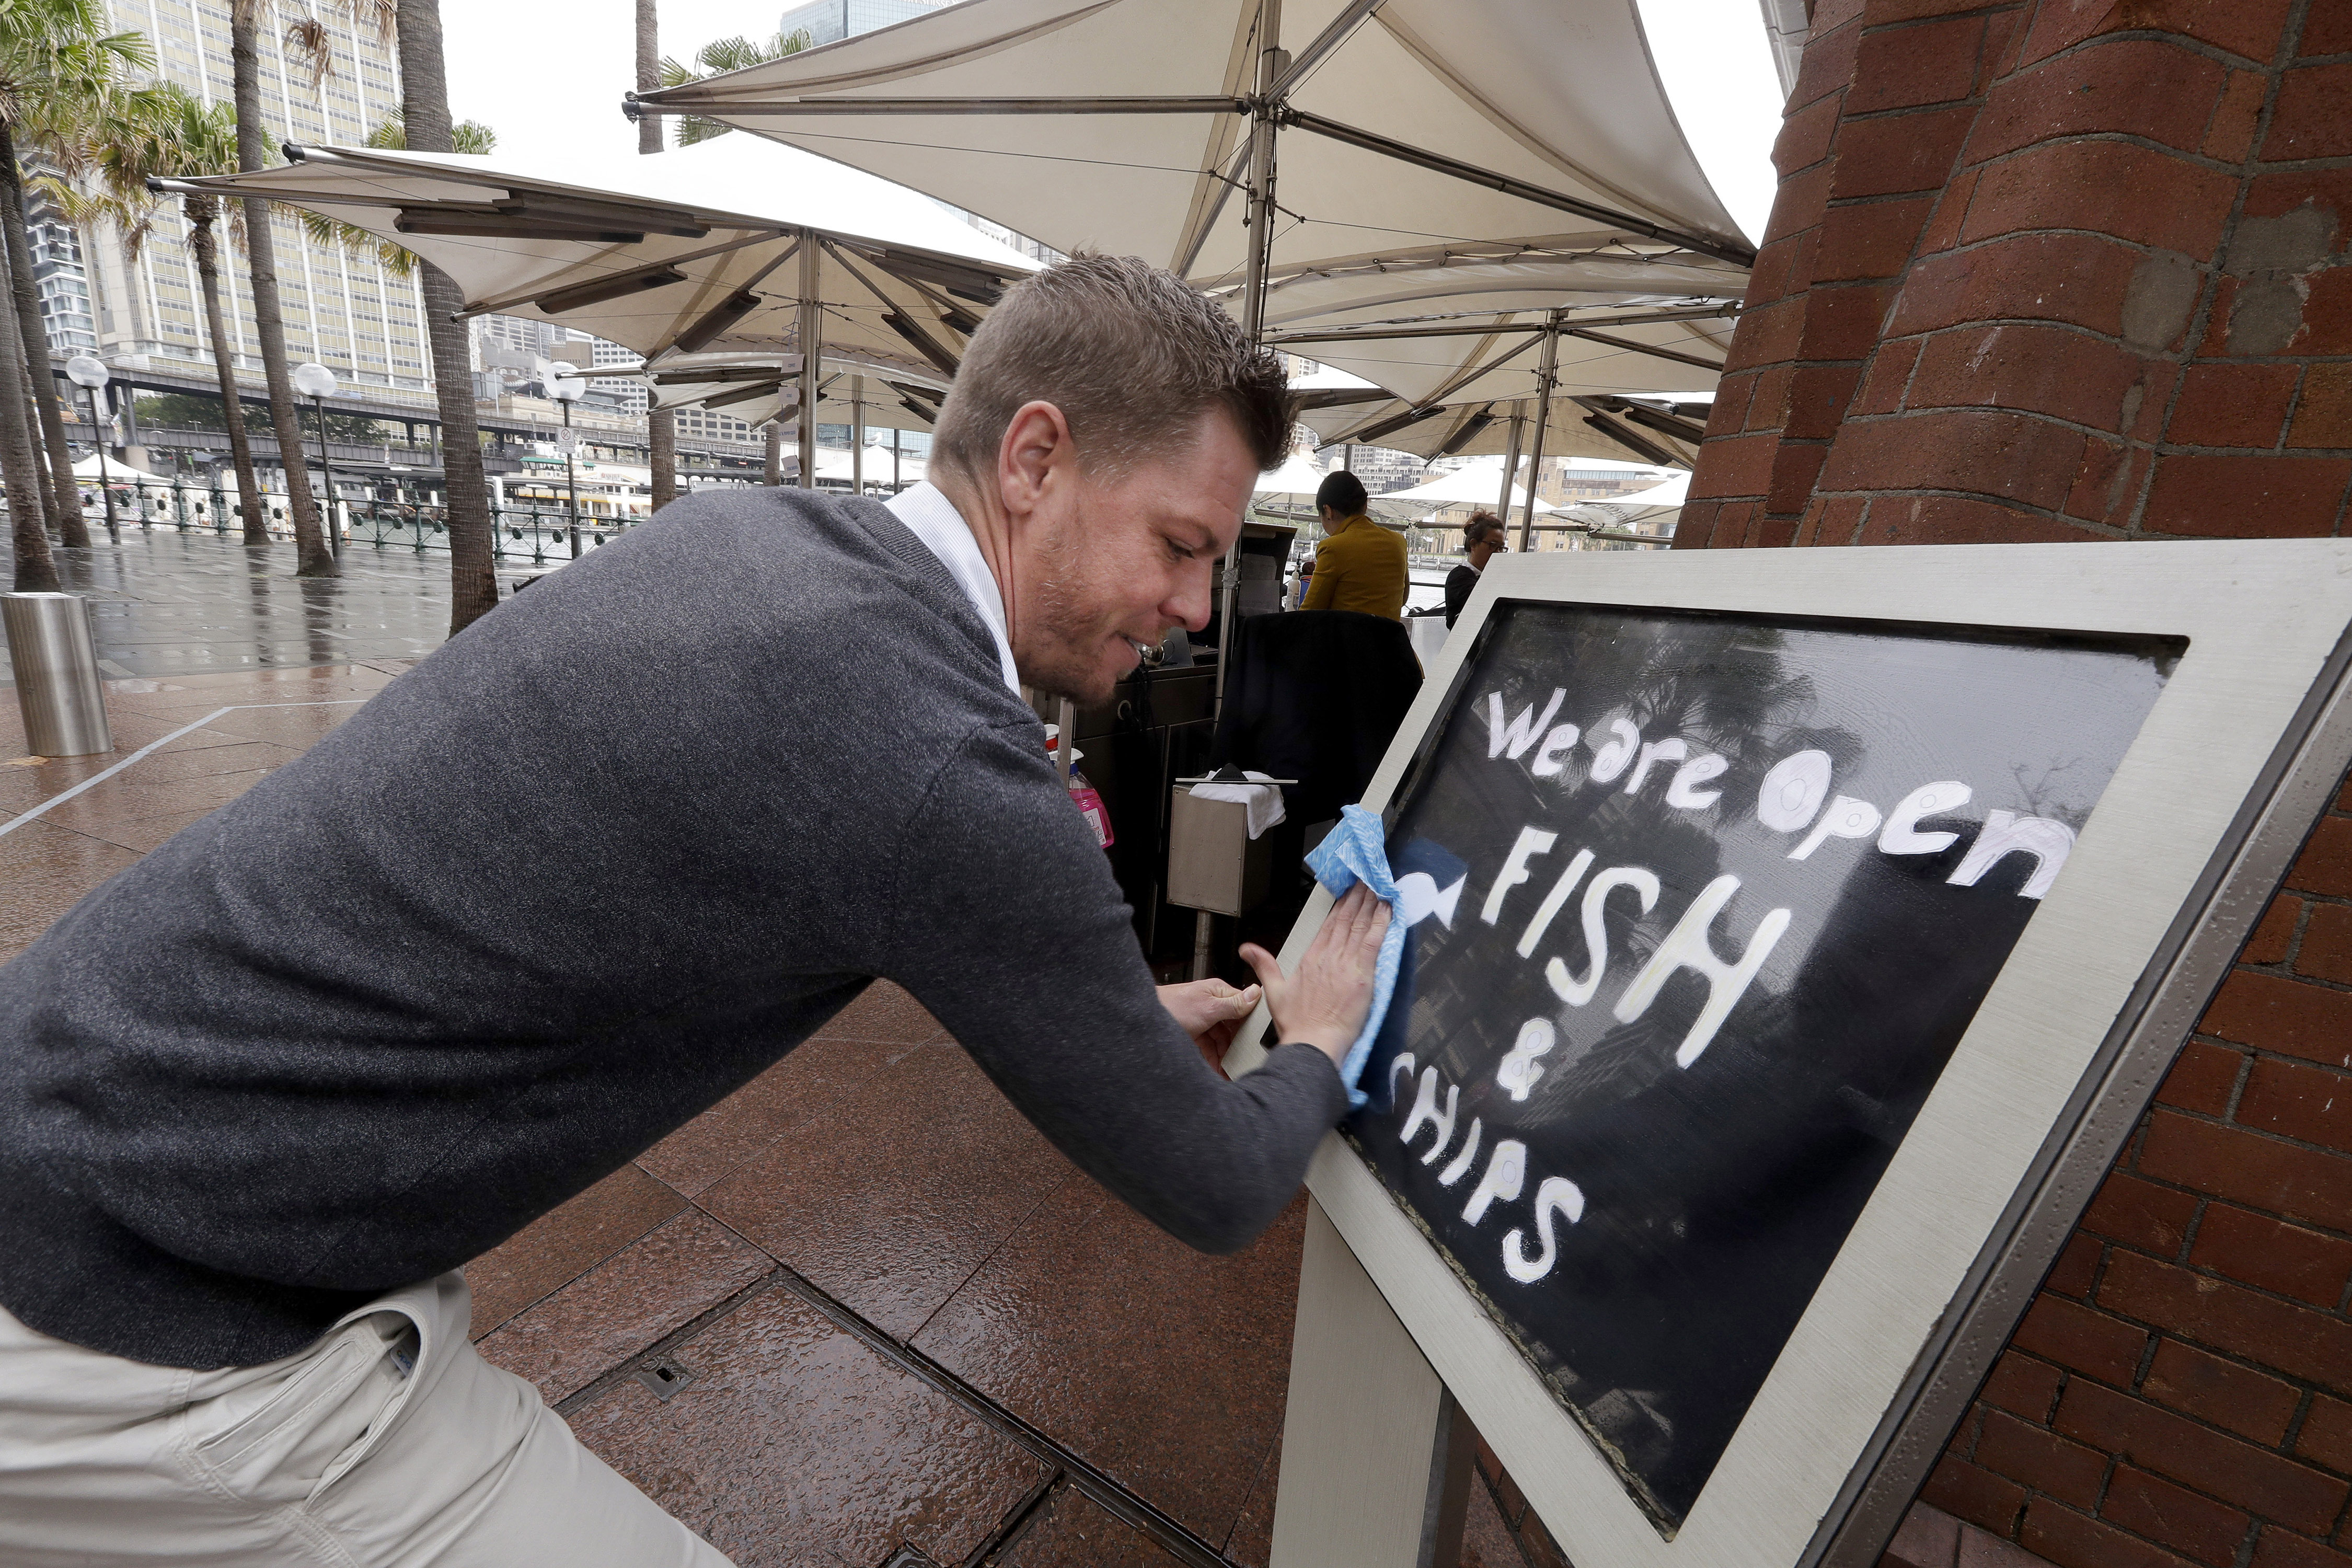 Alec Owes wipes a sign alerting customers that the Sydney Cove Oyster Bar is open as stage 1 of the lifting of Covid-19 restrictions begins in Sydney